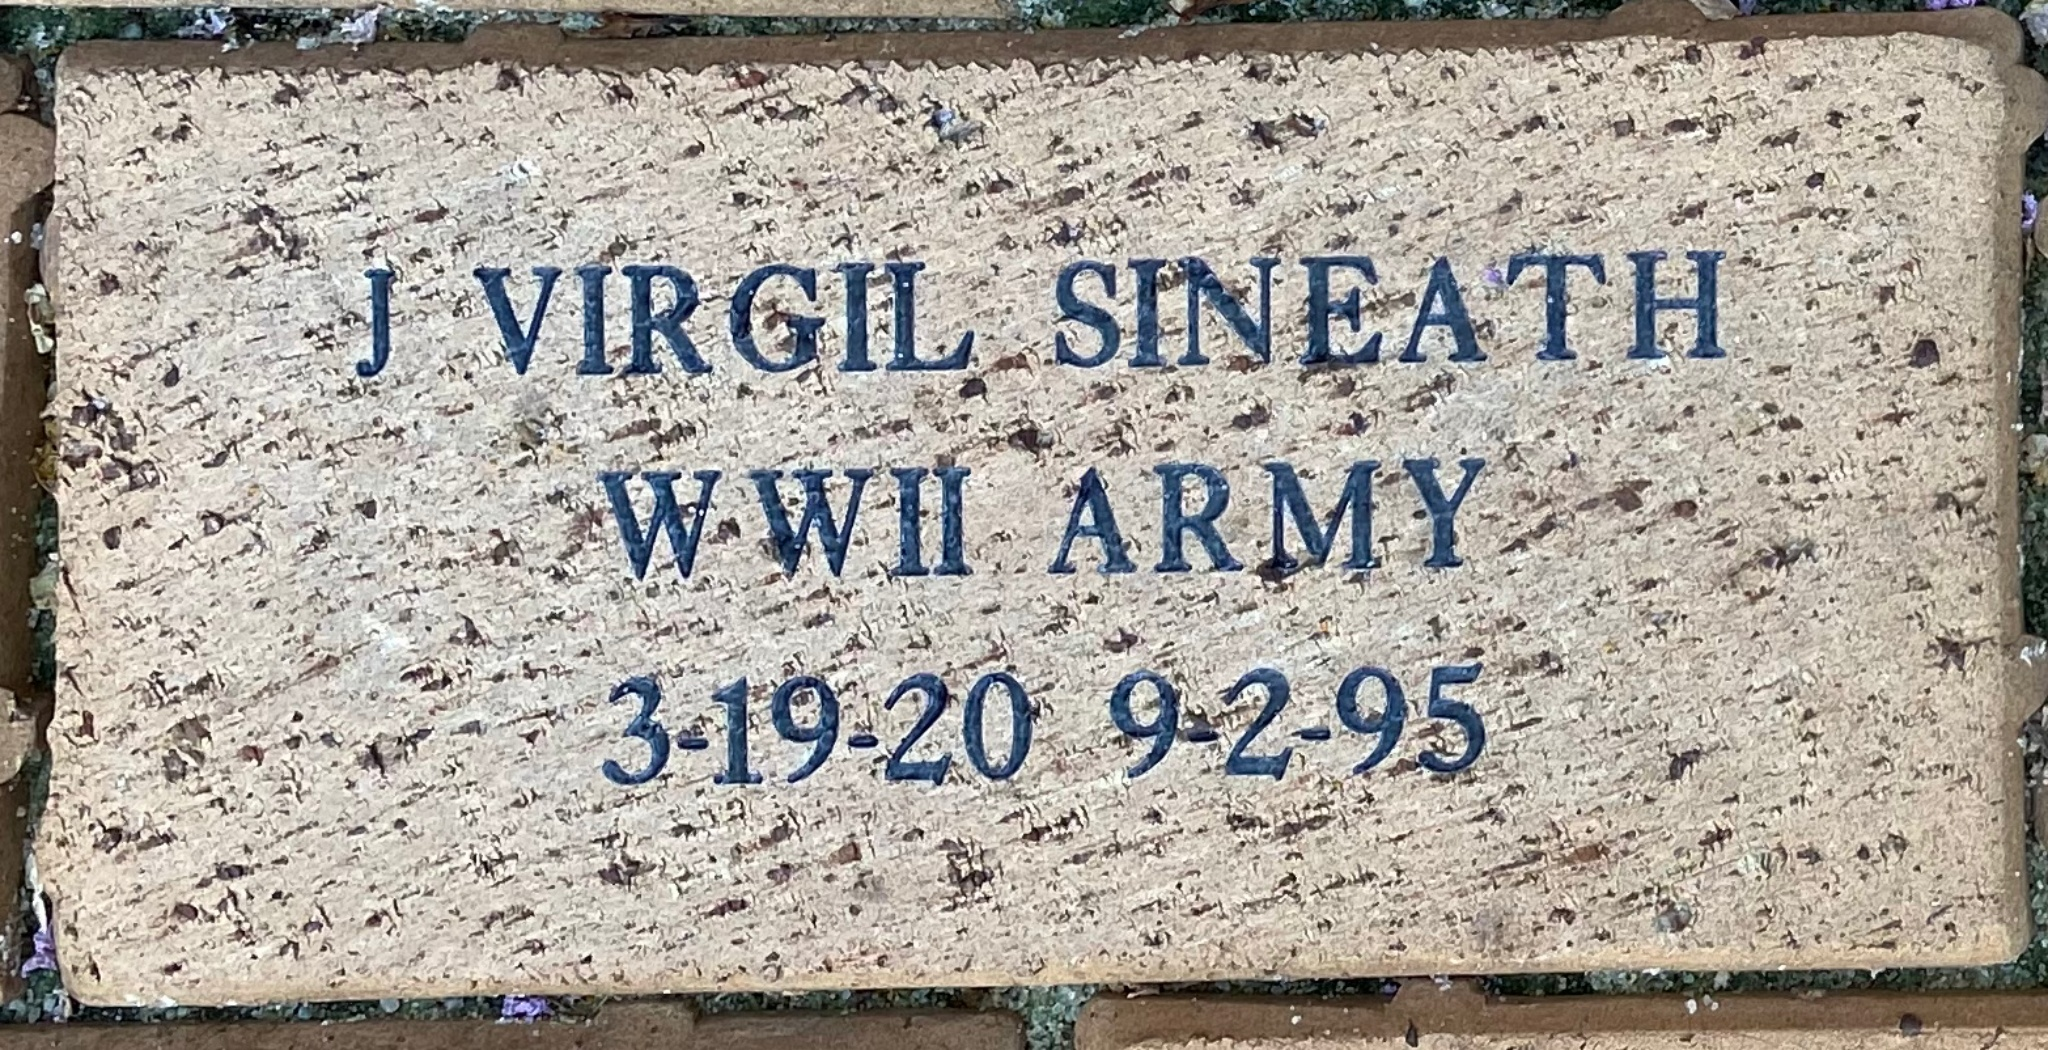 J VIRGIL SINEATH WWII ARMY 3-19-20 9-2-95